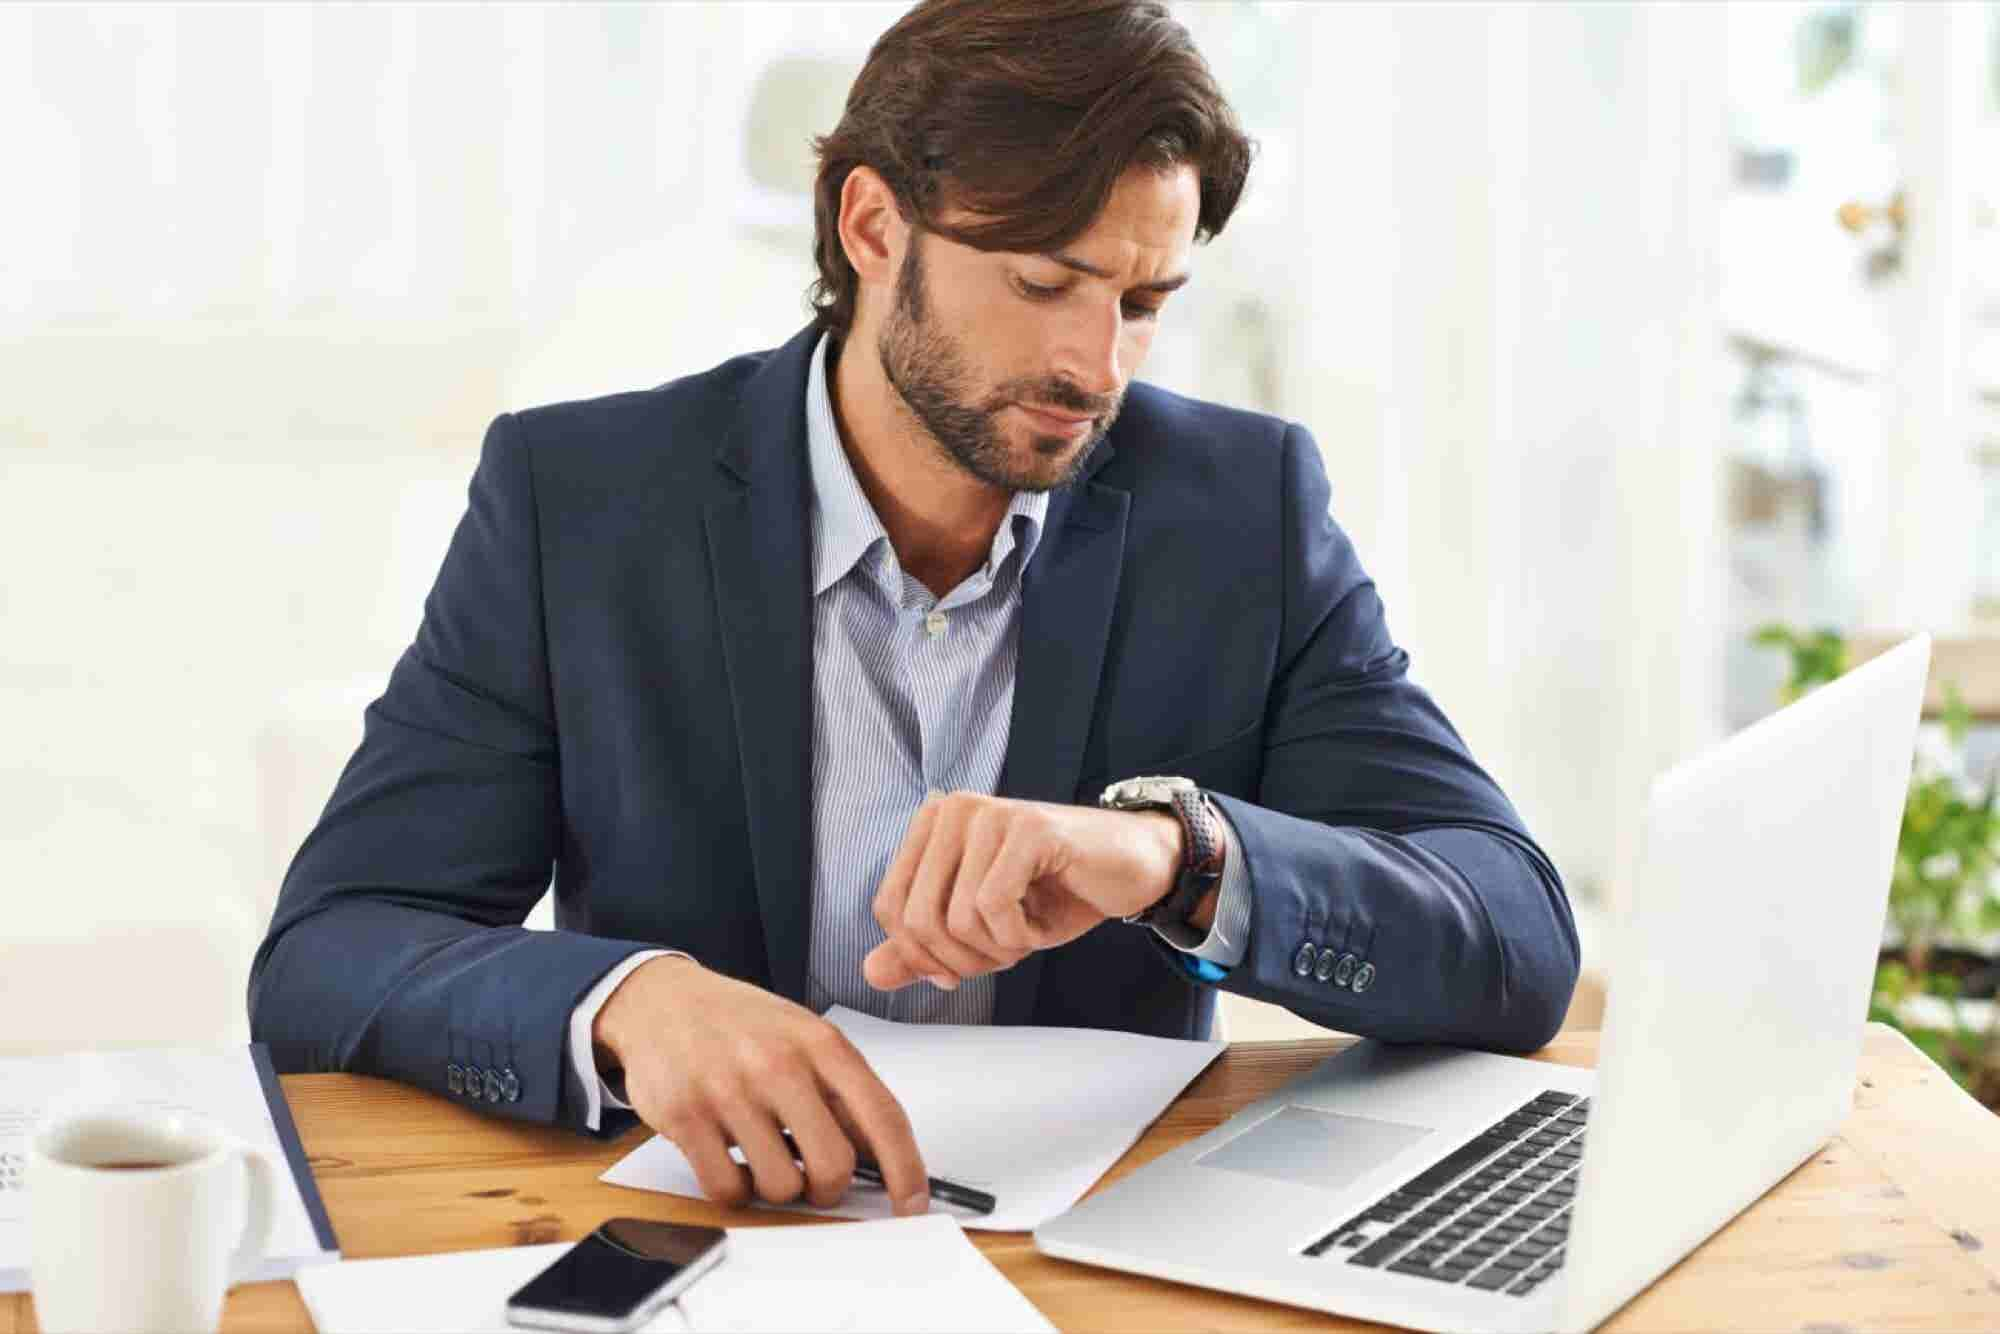 Managing Your Schedule Like a Boss: Tips the Experts Never Tell You